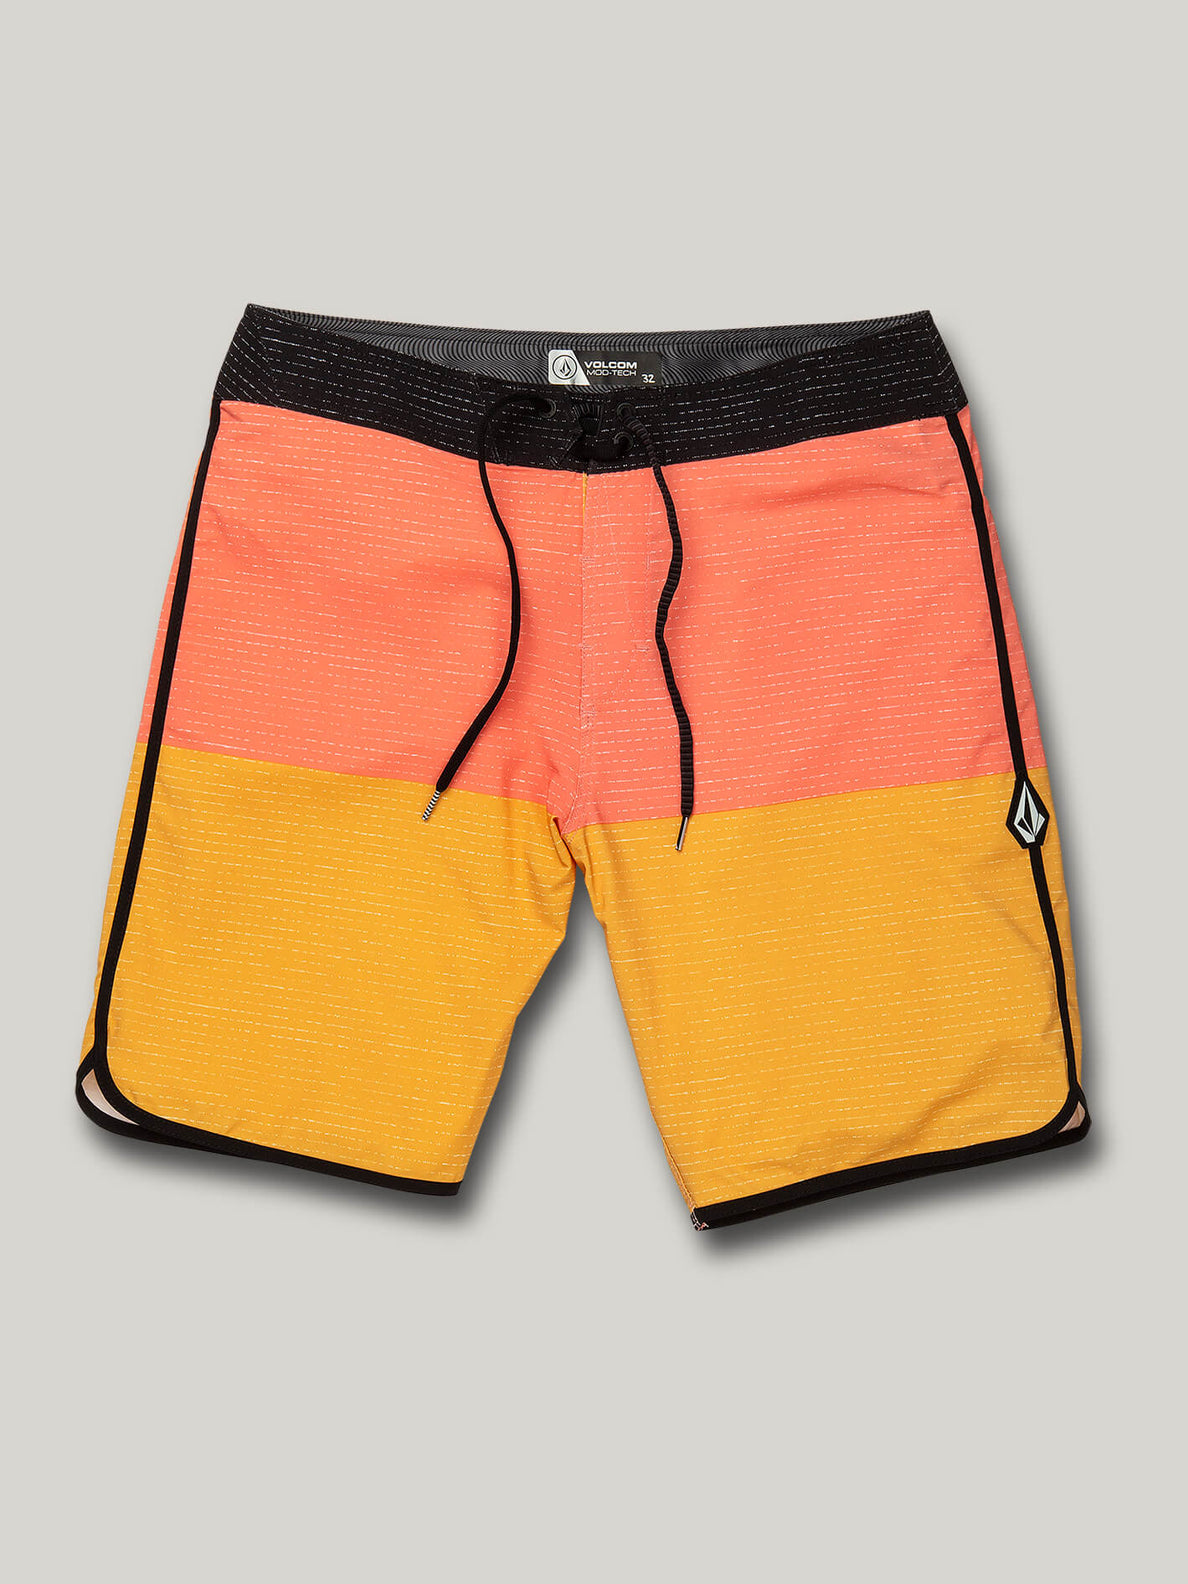 Lido Scallop Mod-Tech Trunks - Mineral Yellow (A0822015_MYL) [F]